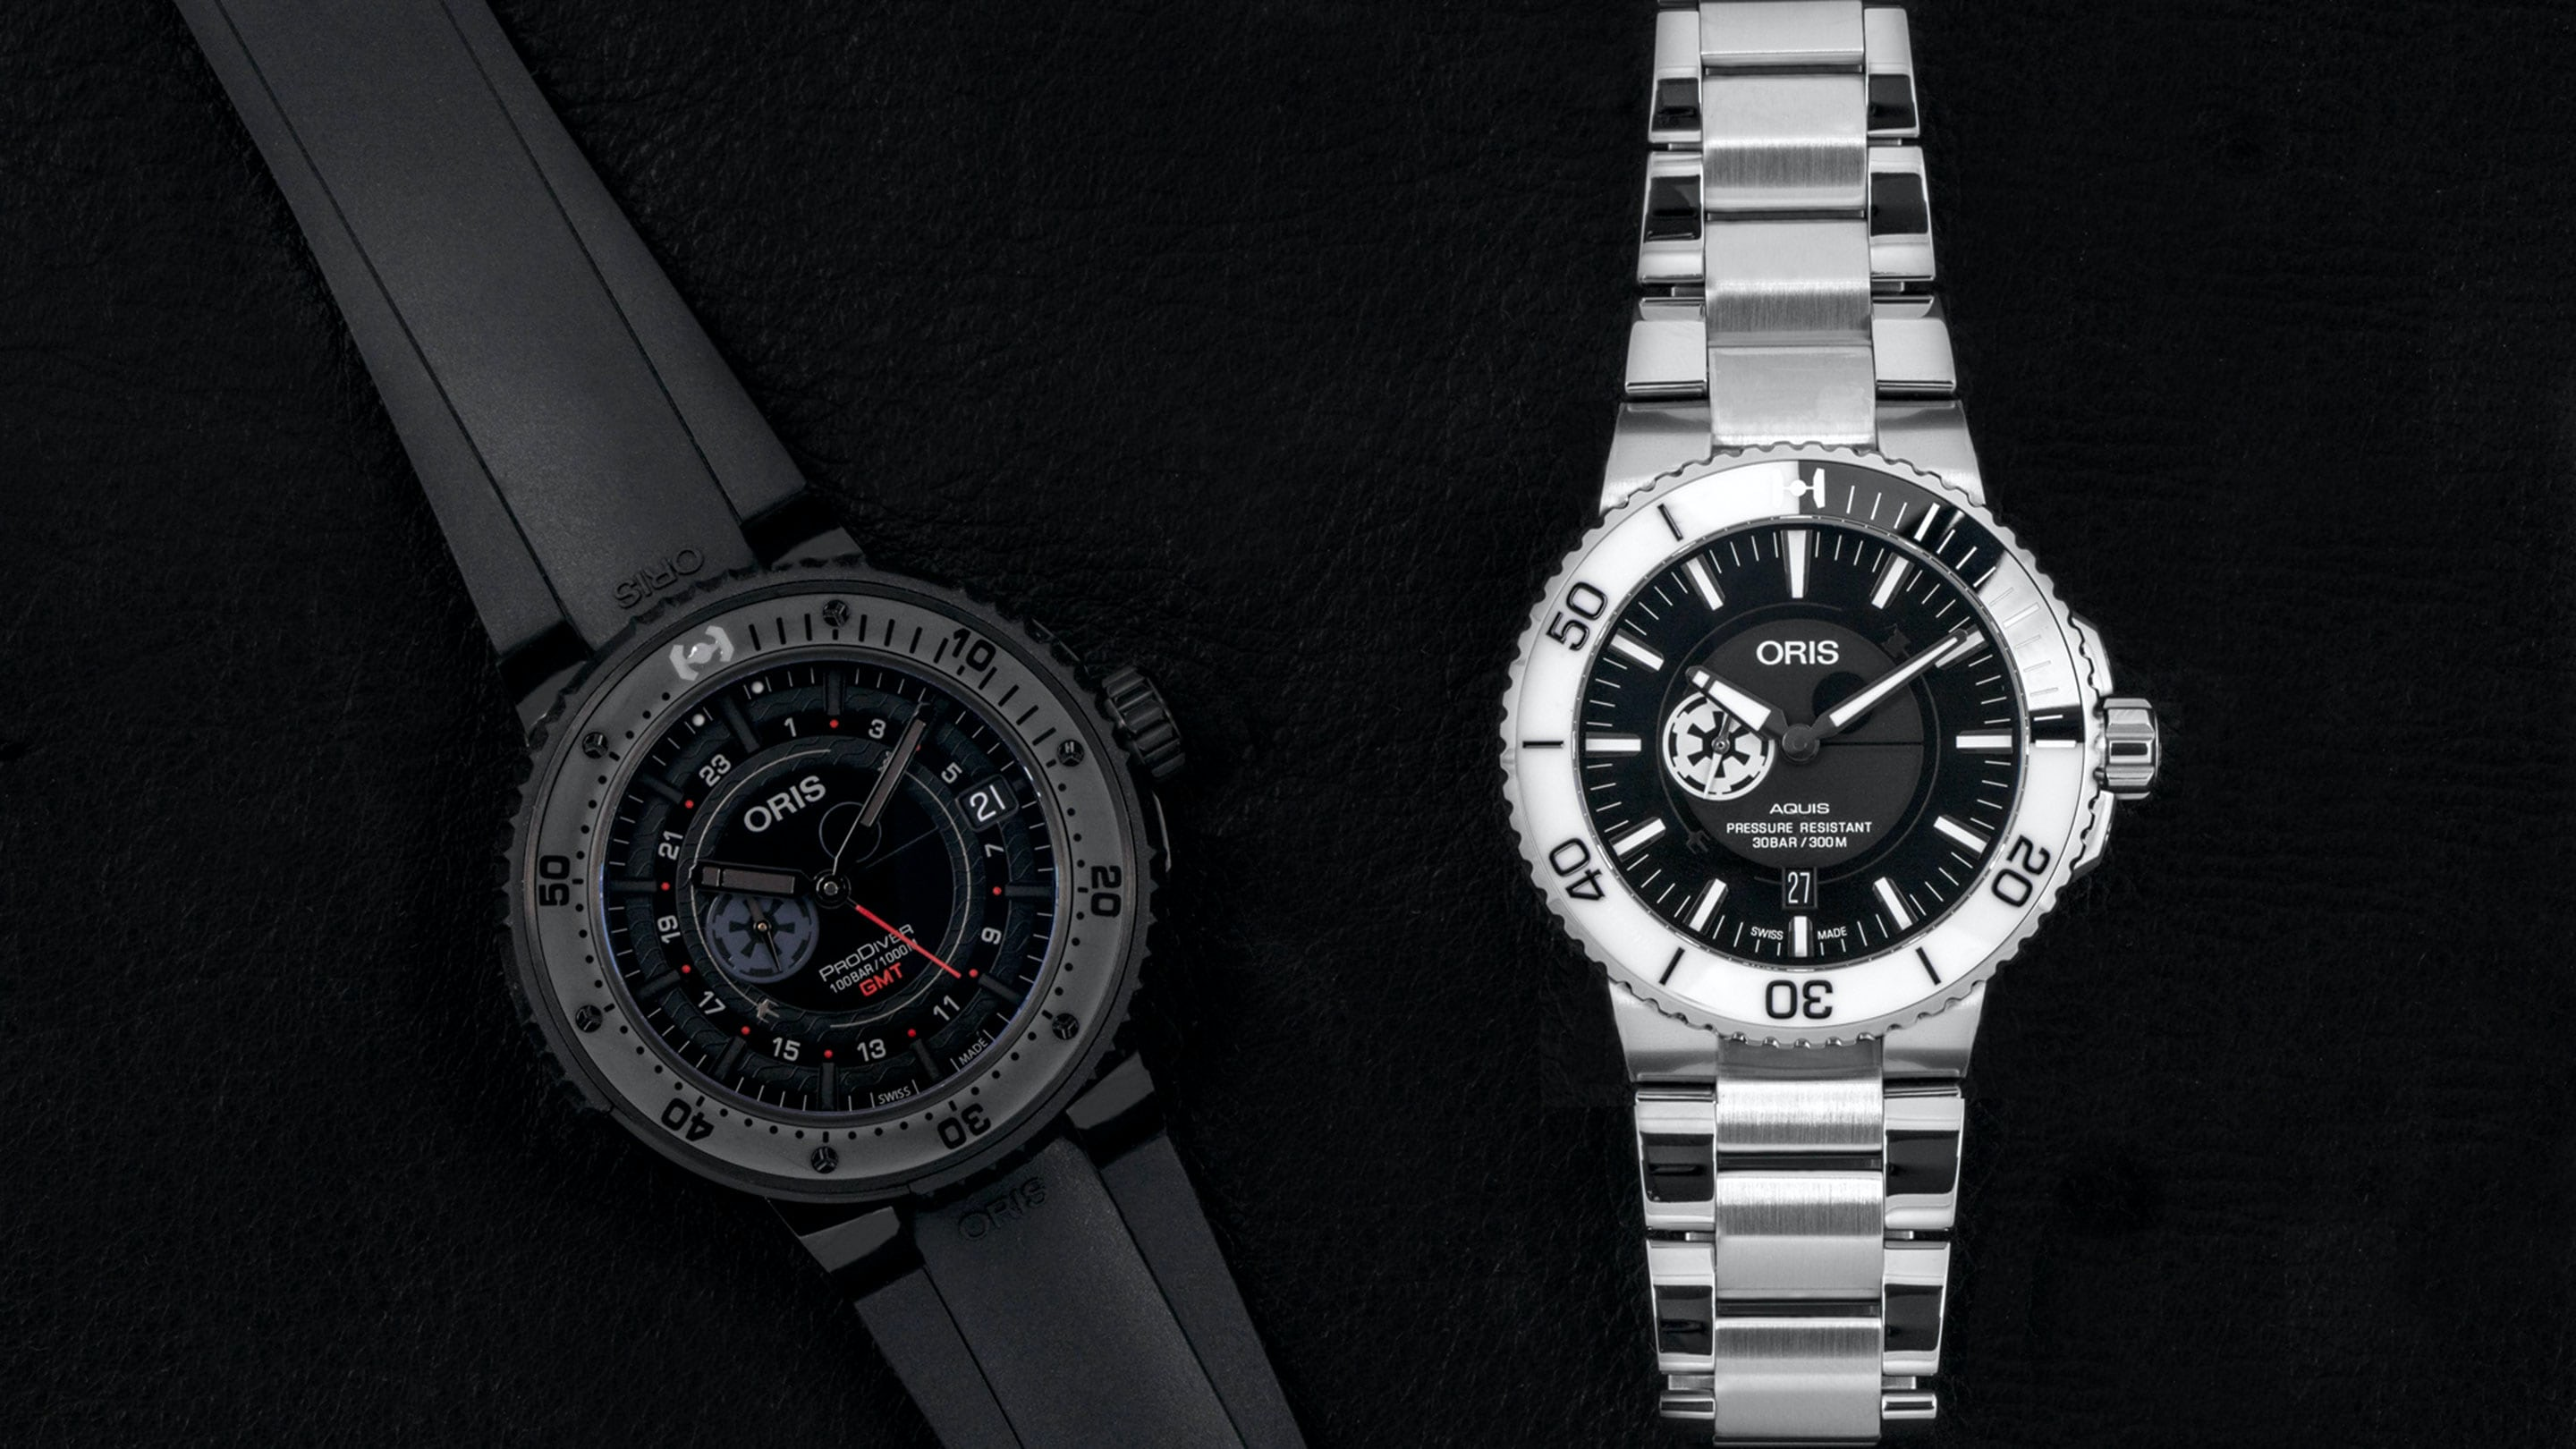 Introducing: The Oris Star Wars 'Dark Side' Limited Edition Set (Live Pics  + Pricing) - HODINKEE